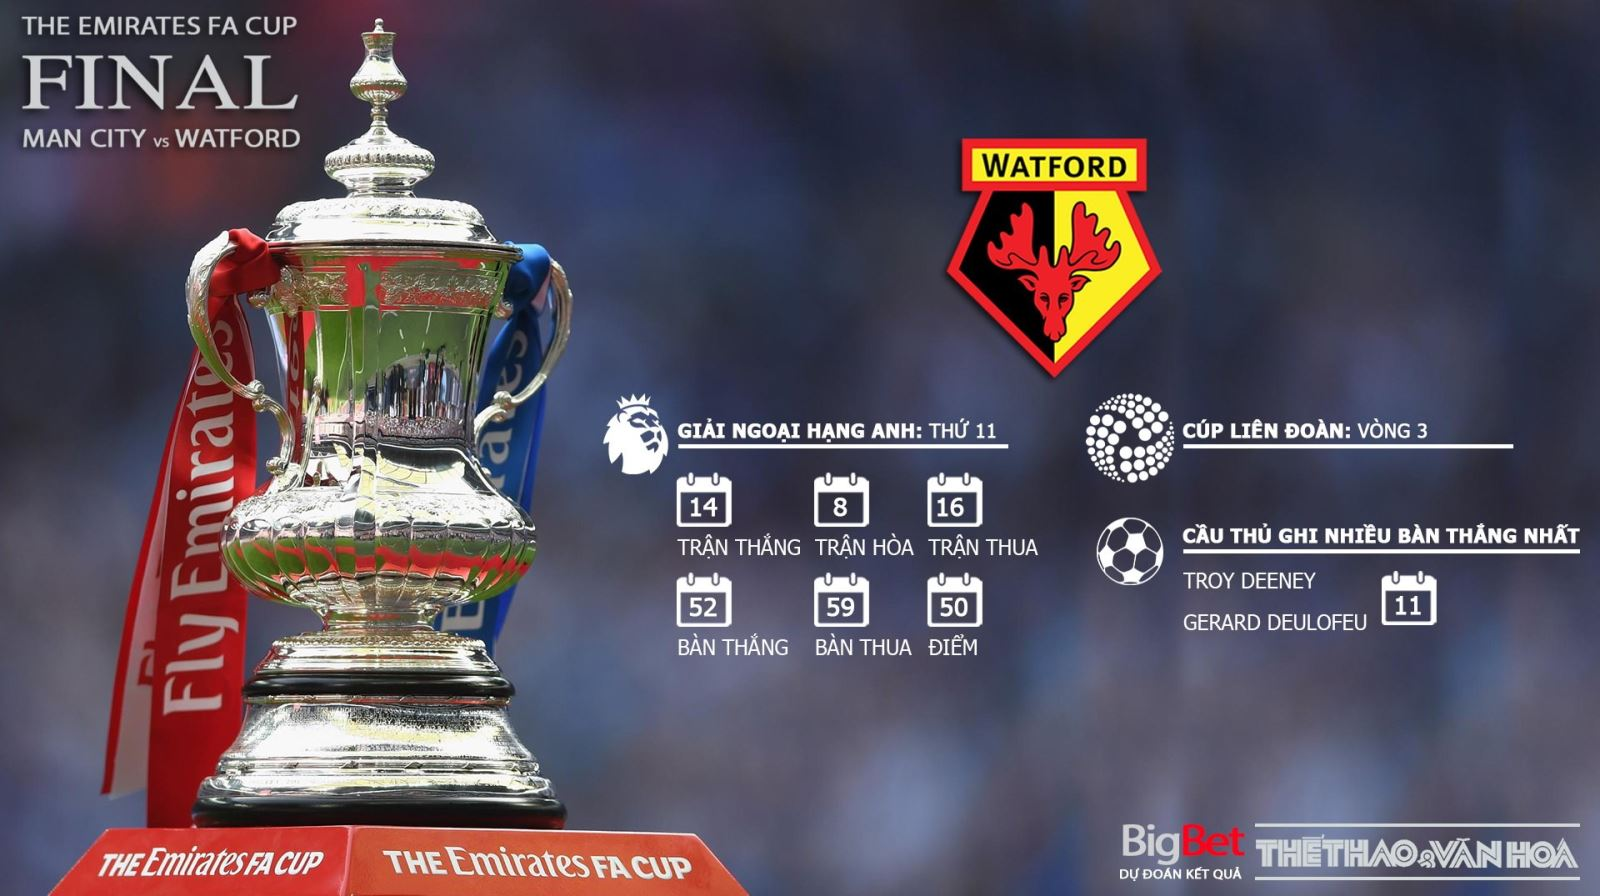 Soi kèo Man City vs Watford, trực tiếp bóng đá, trực tiếp Man City vs Watford, xem trực tiếp Man City vs Watford ở đâu, Man City vs Watford, Man City, Watford